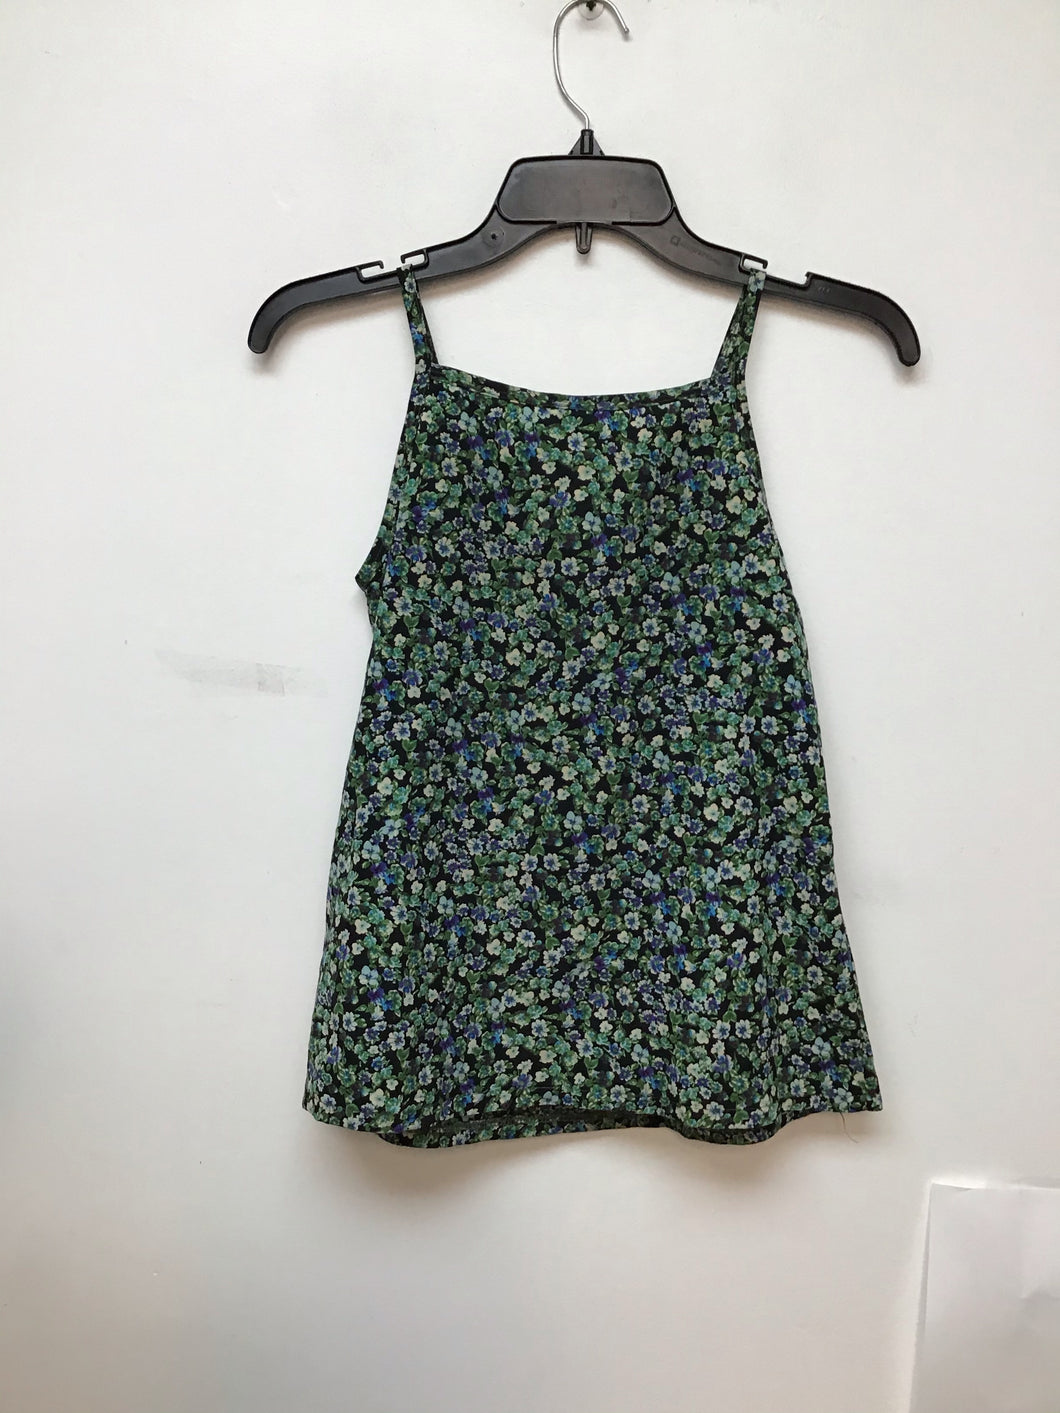 Knit Works spaghetti strap floral print top size medium